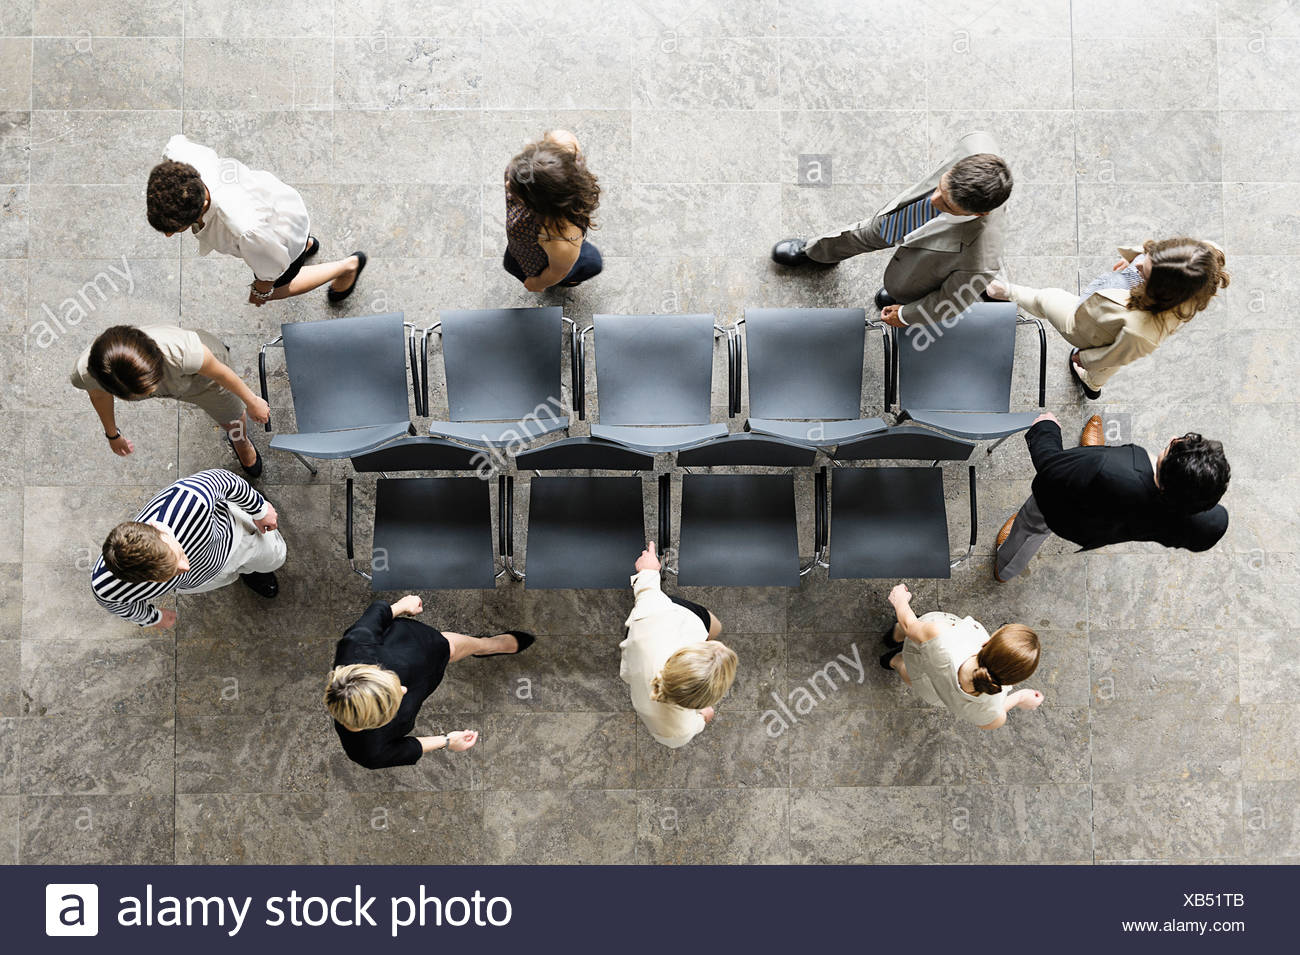 Music Chair Musical Chairs Game Stock Photos And Musical Chairs Game